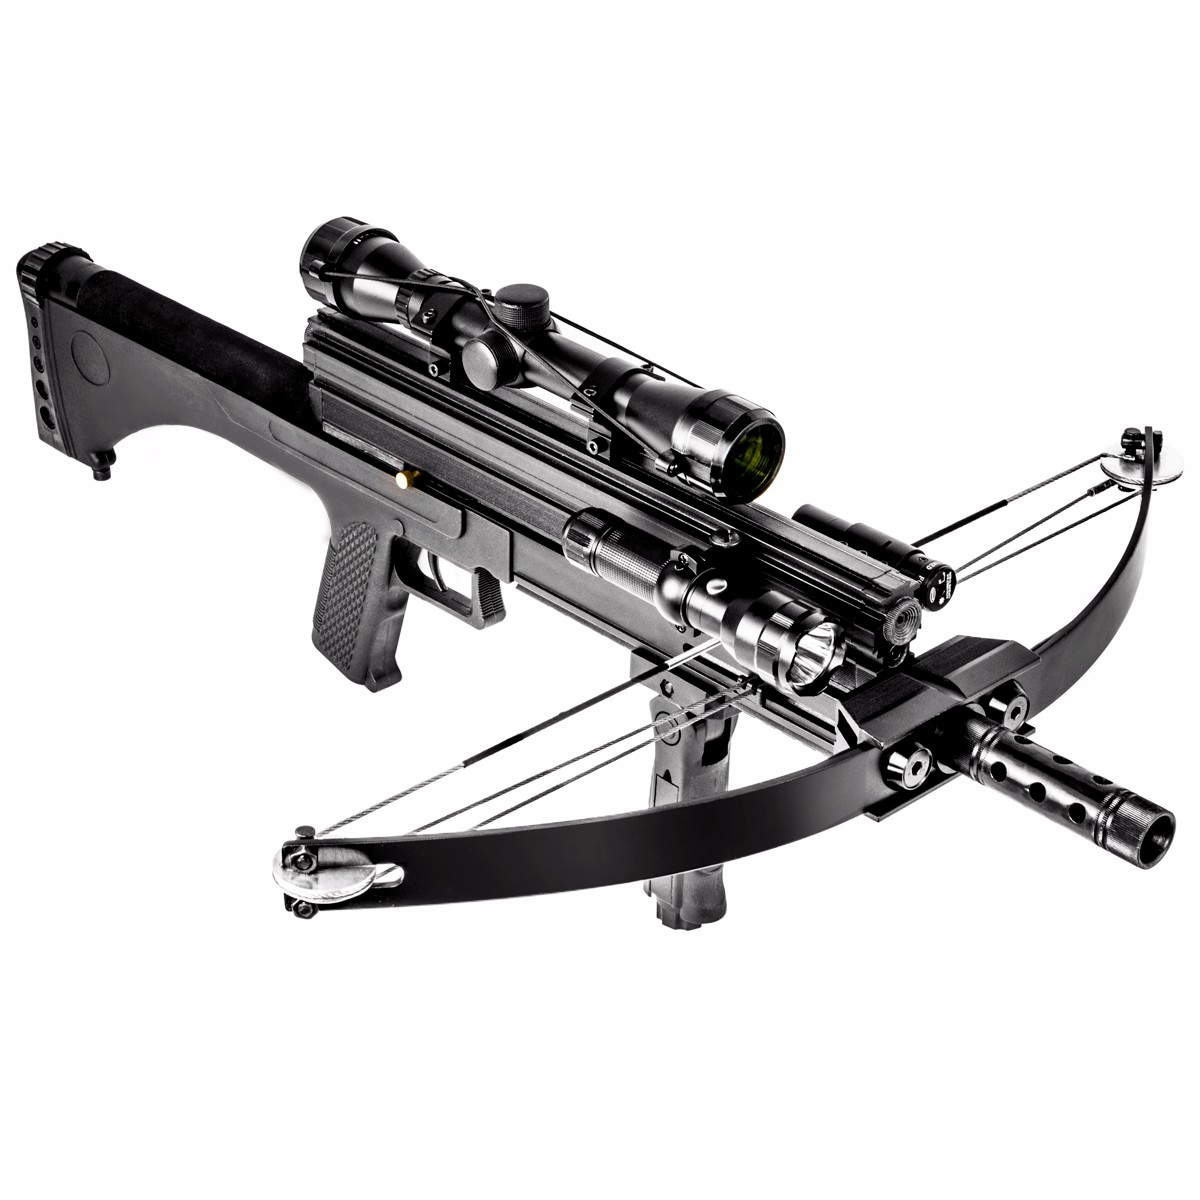 XtremepowerUS Multifunctional Crossbow 80 lbs 160 fps Hunting Equipment 200 Magazine Capacity, Black